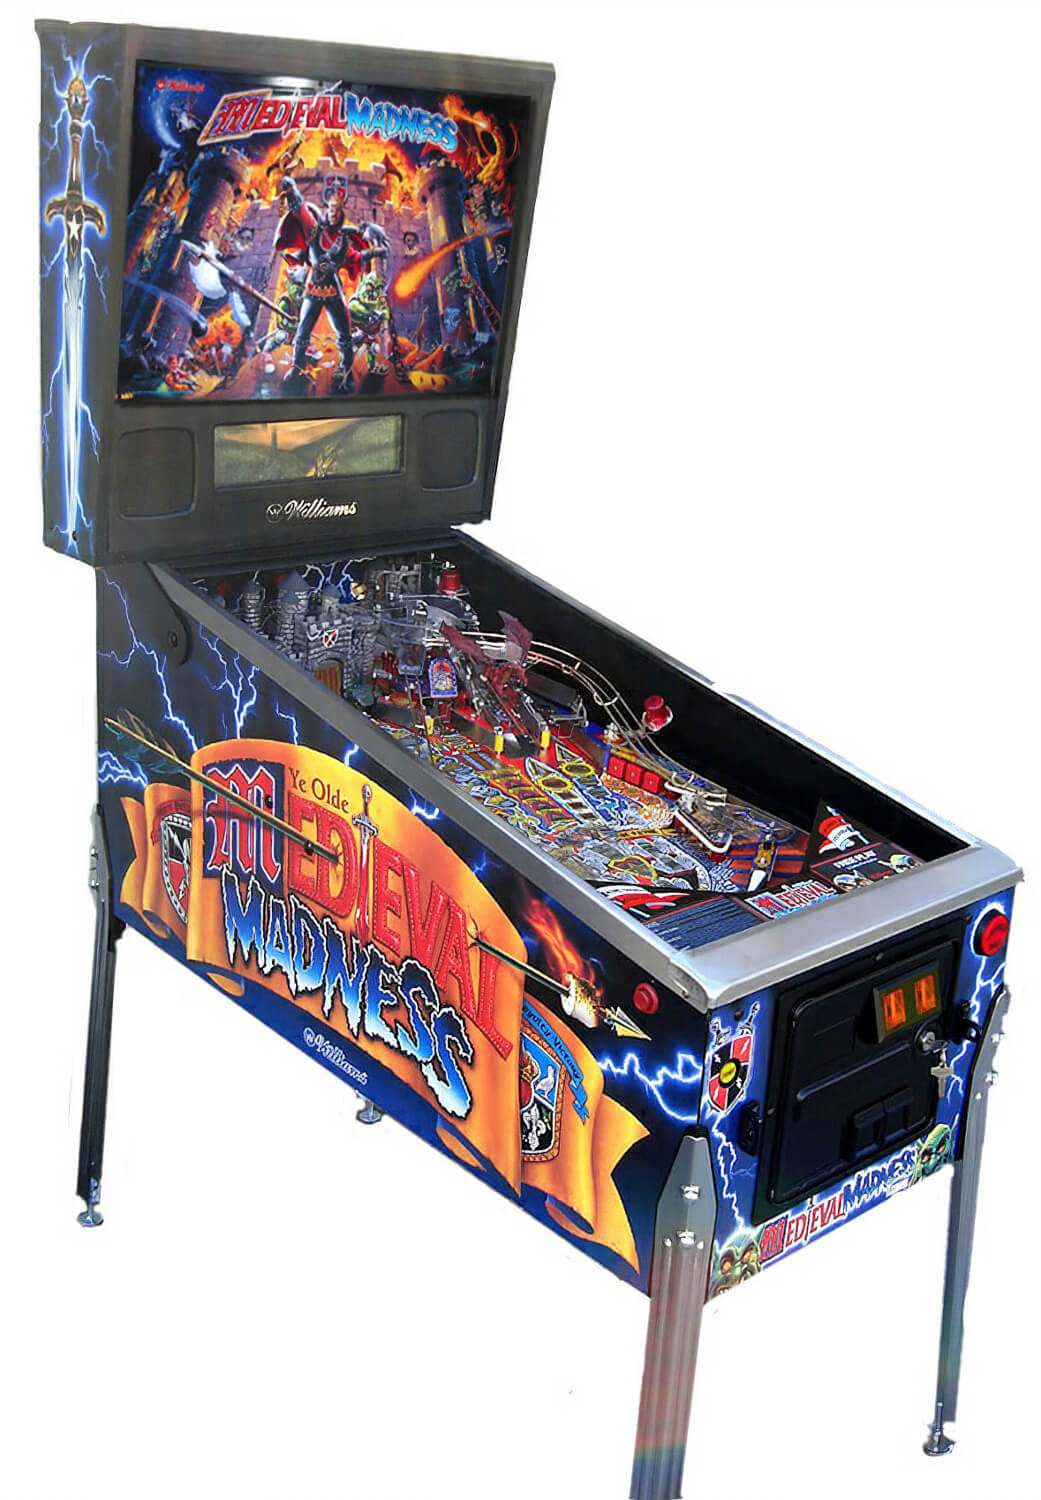 Medieval Madness Pinball Machine For Sale | Liberty Games